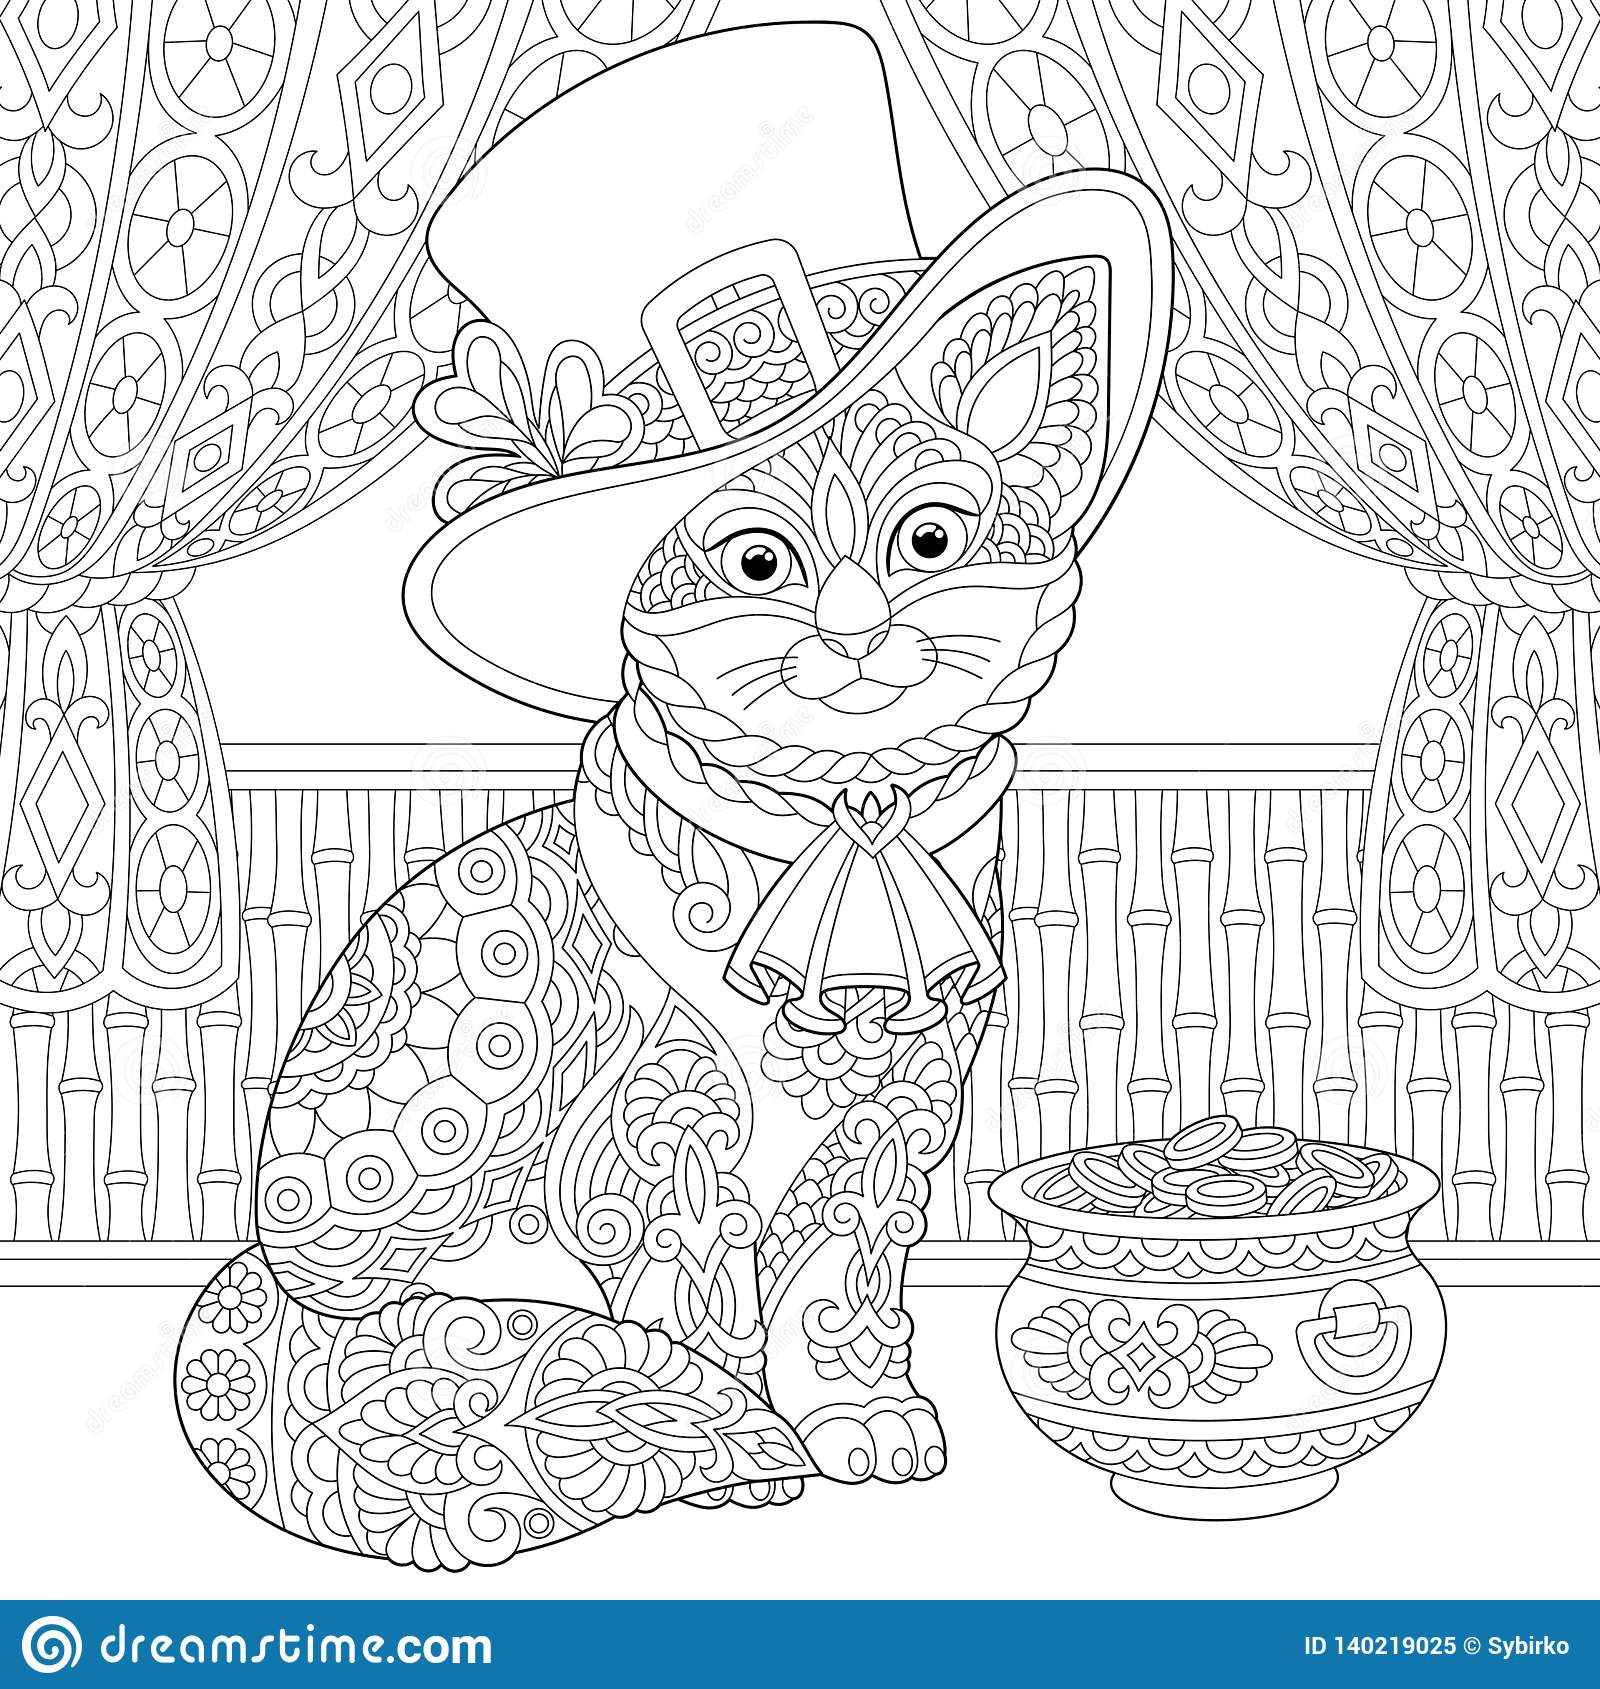 St Patrick Day Zentangle Cat Coloring Page Stock Vector Illustration Of Animal Design 140219025